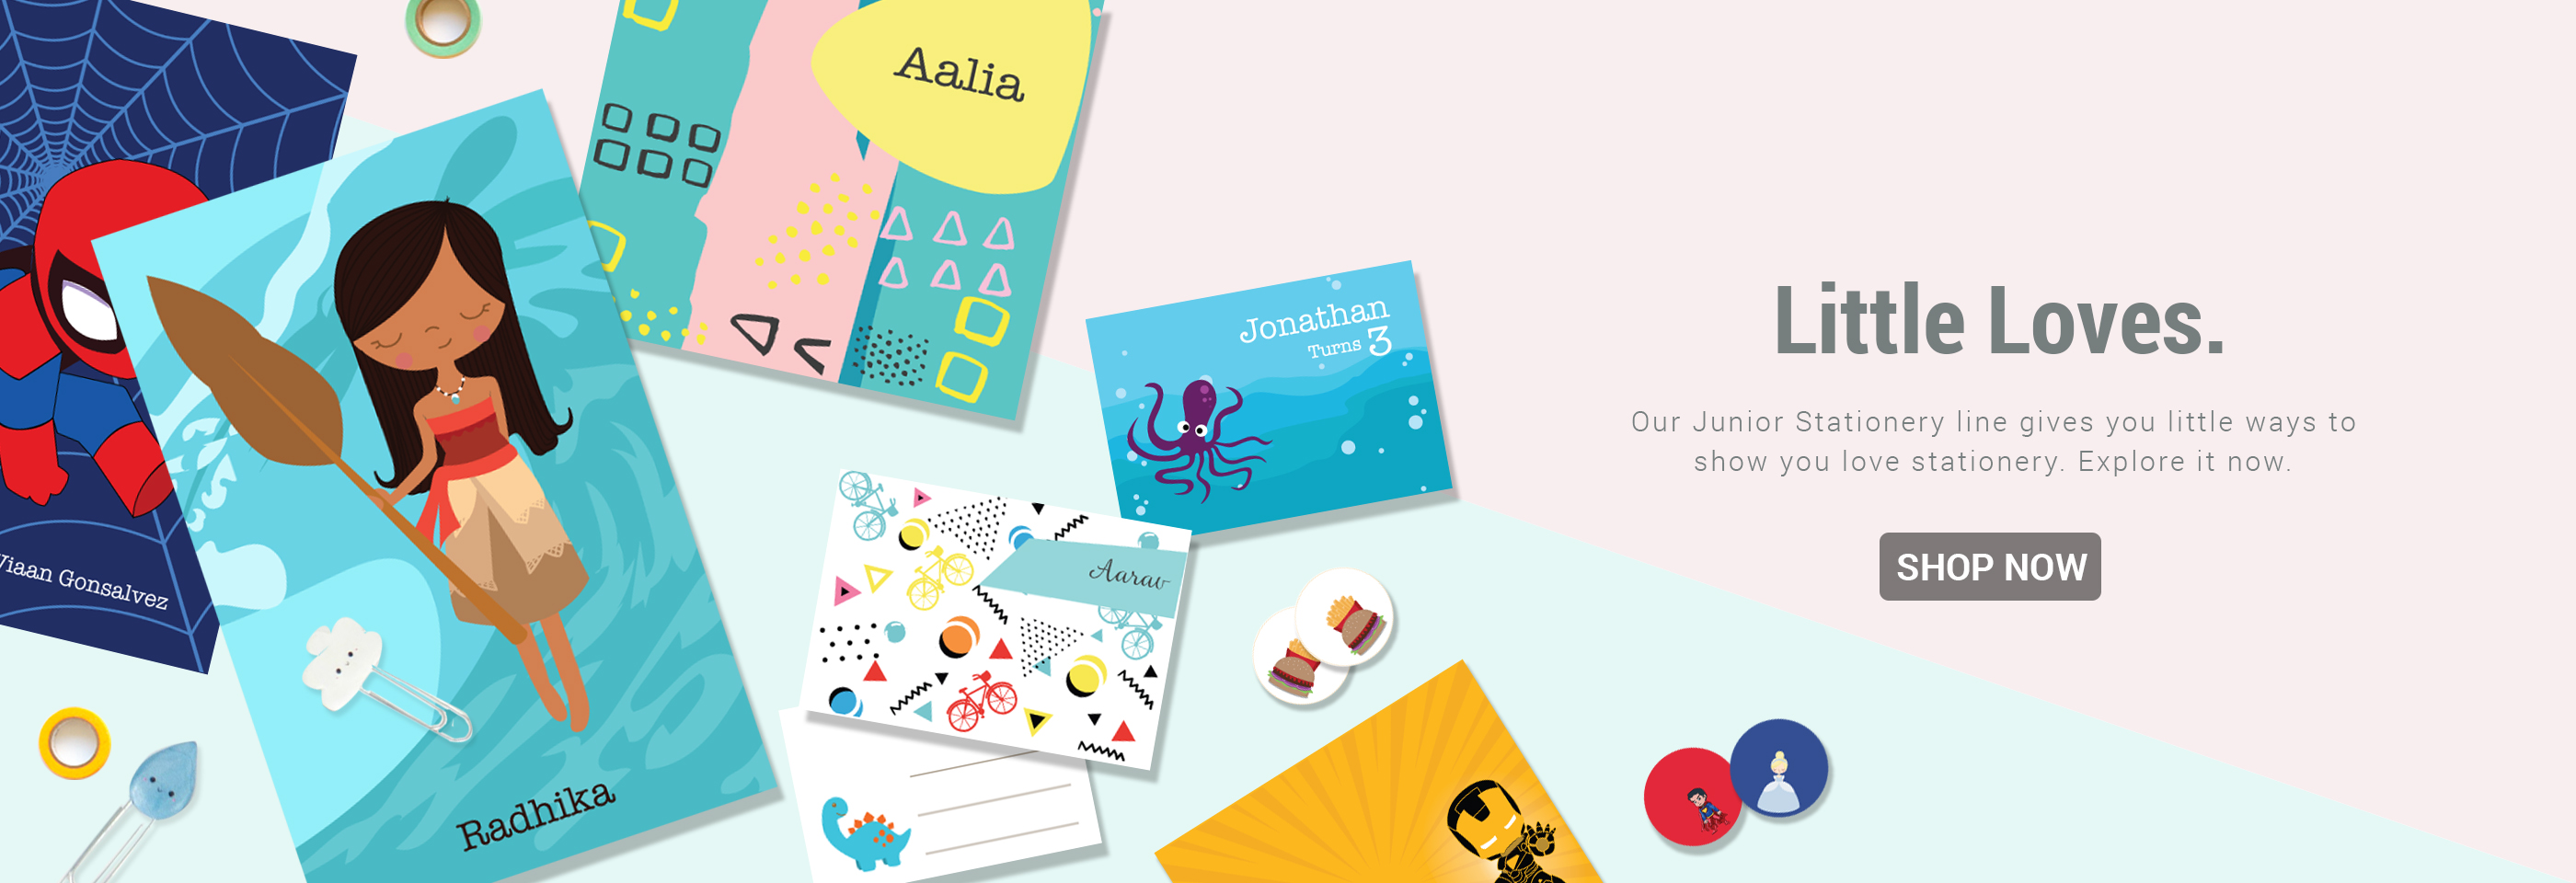 JUNIOR STATIONERY